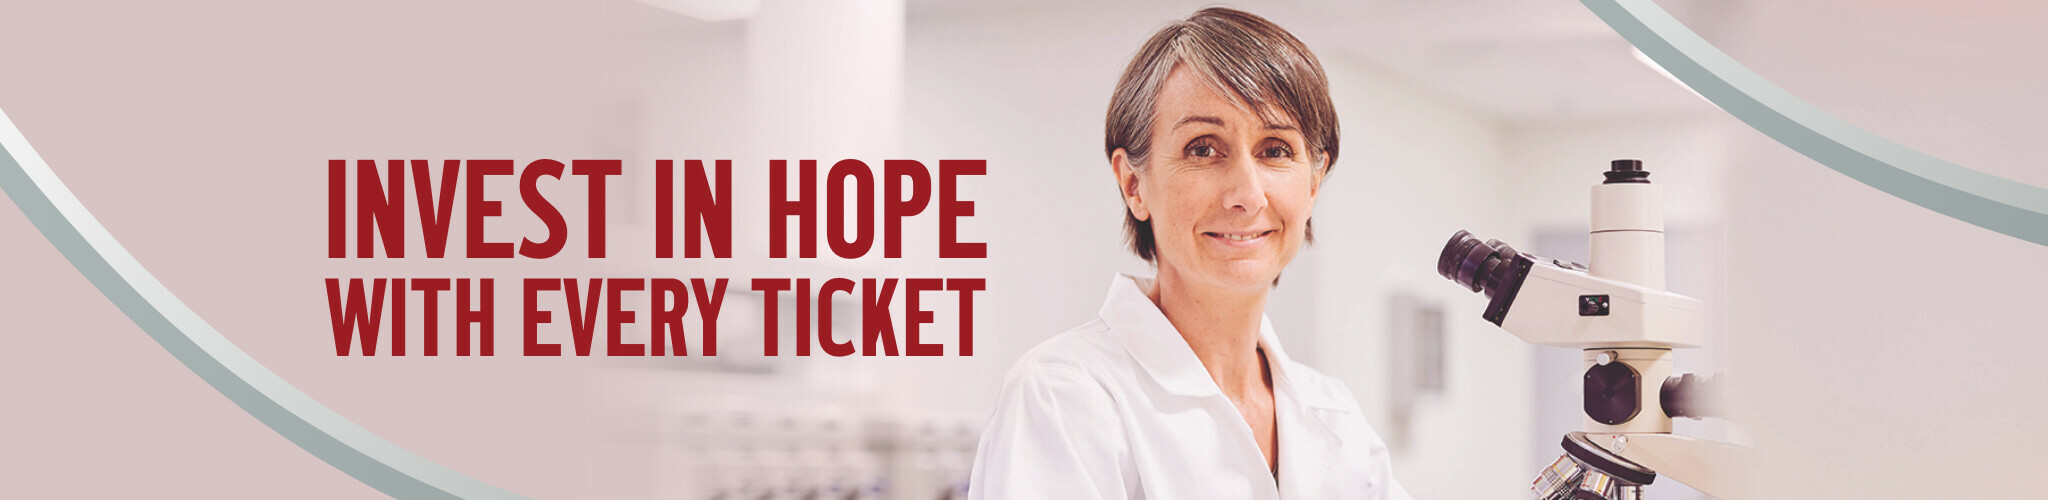 Invest in hope with every ticket